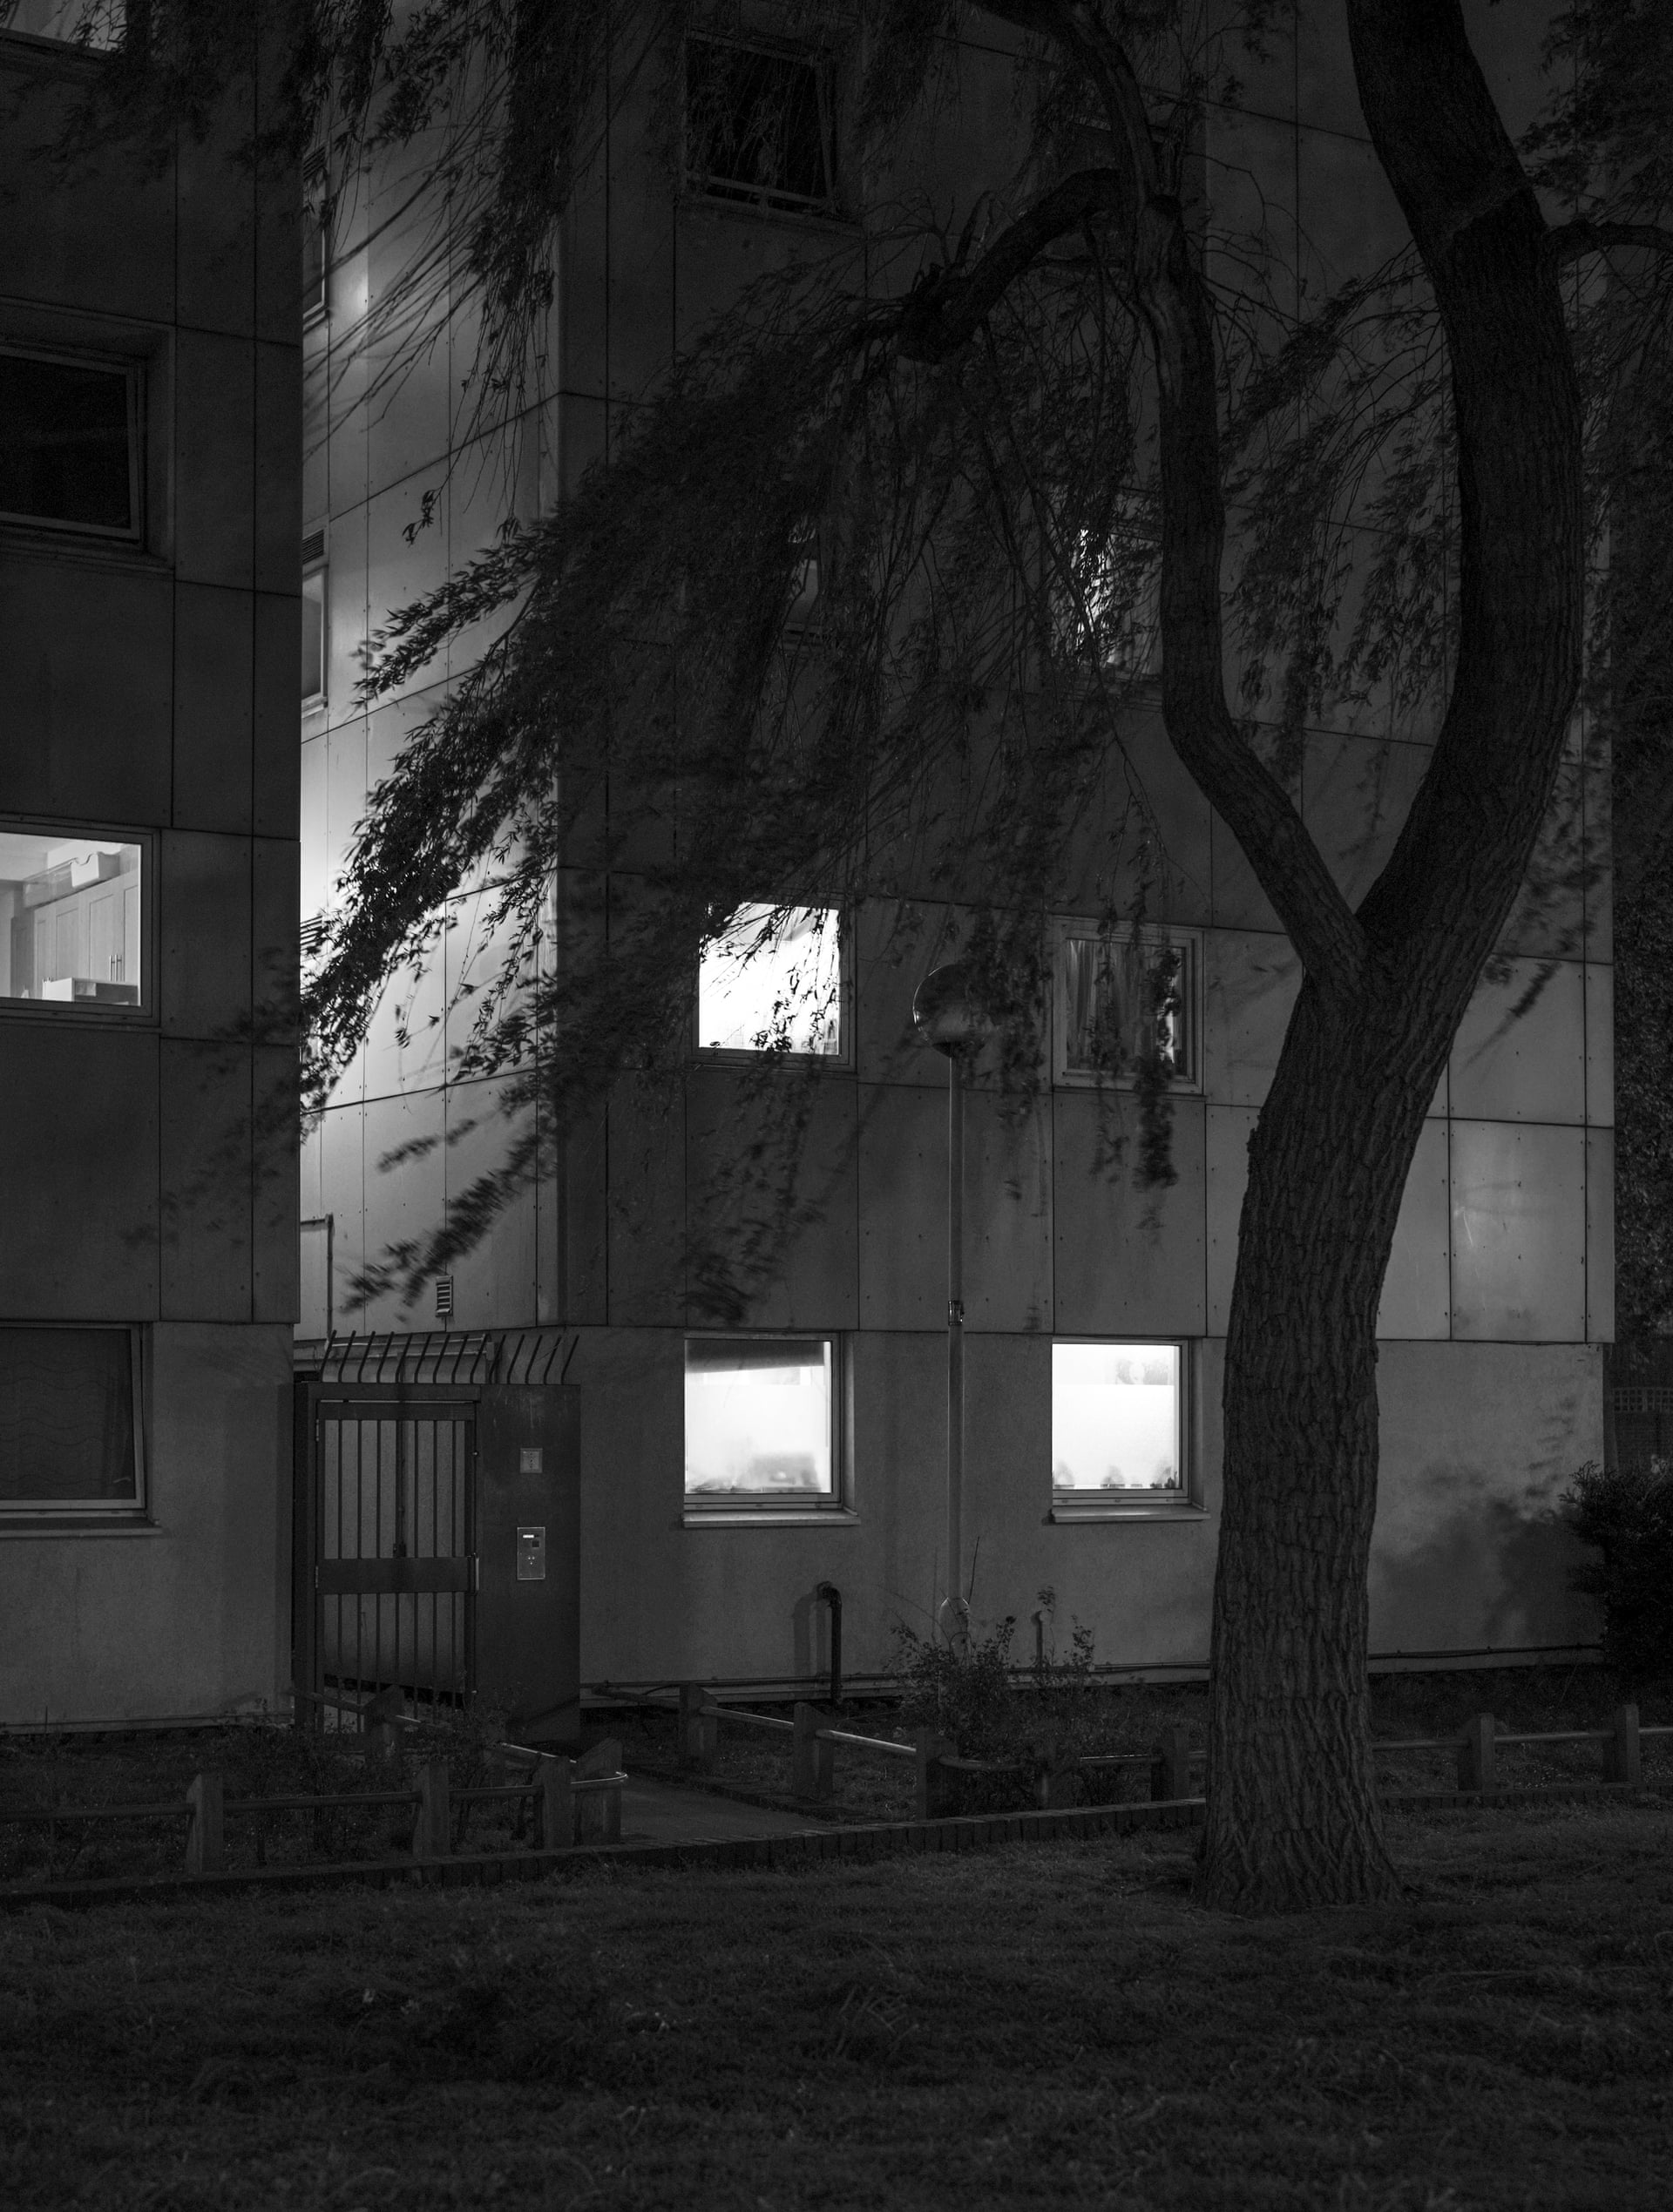 Image of trees silhouetted against lighted windows at night